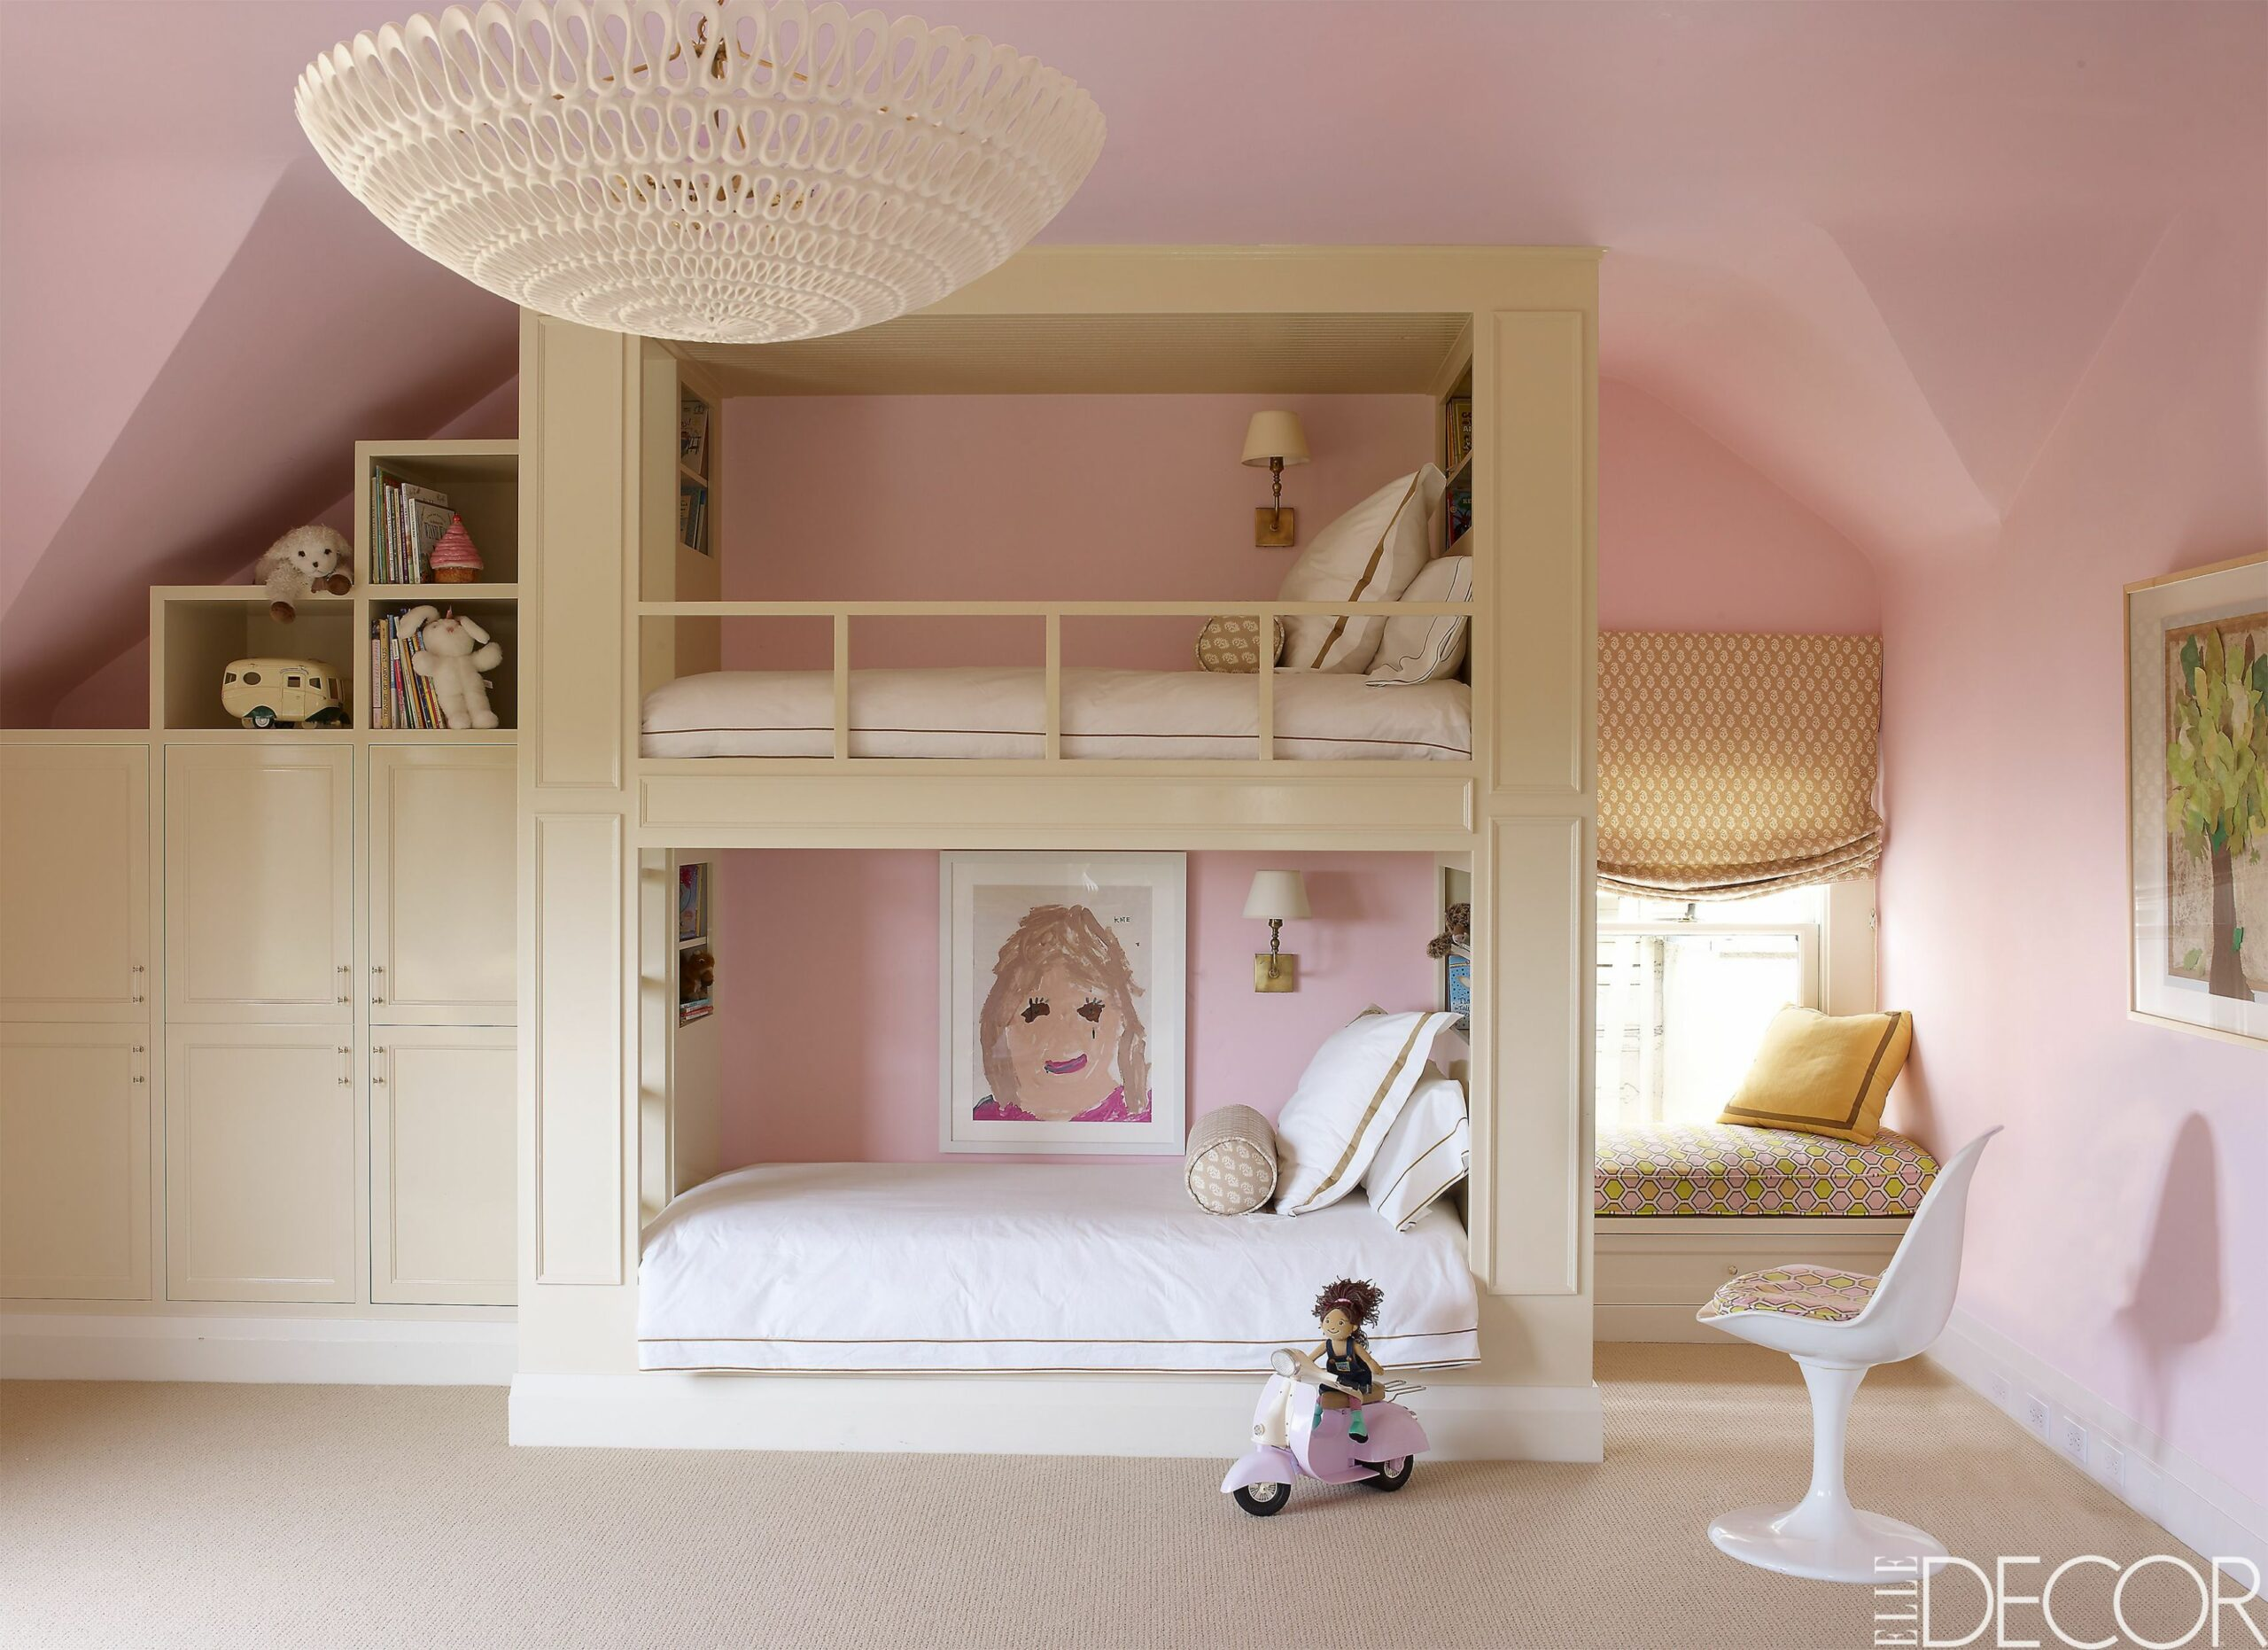 10 Creative Girls Room Ideas - How to Decorate a Girl's Bedroom